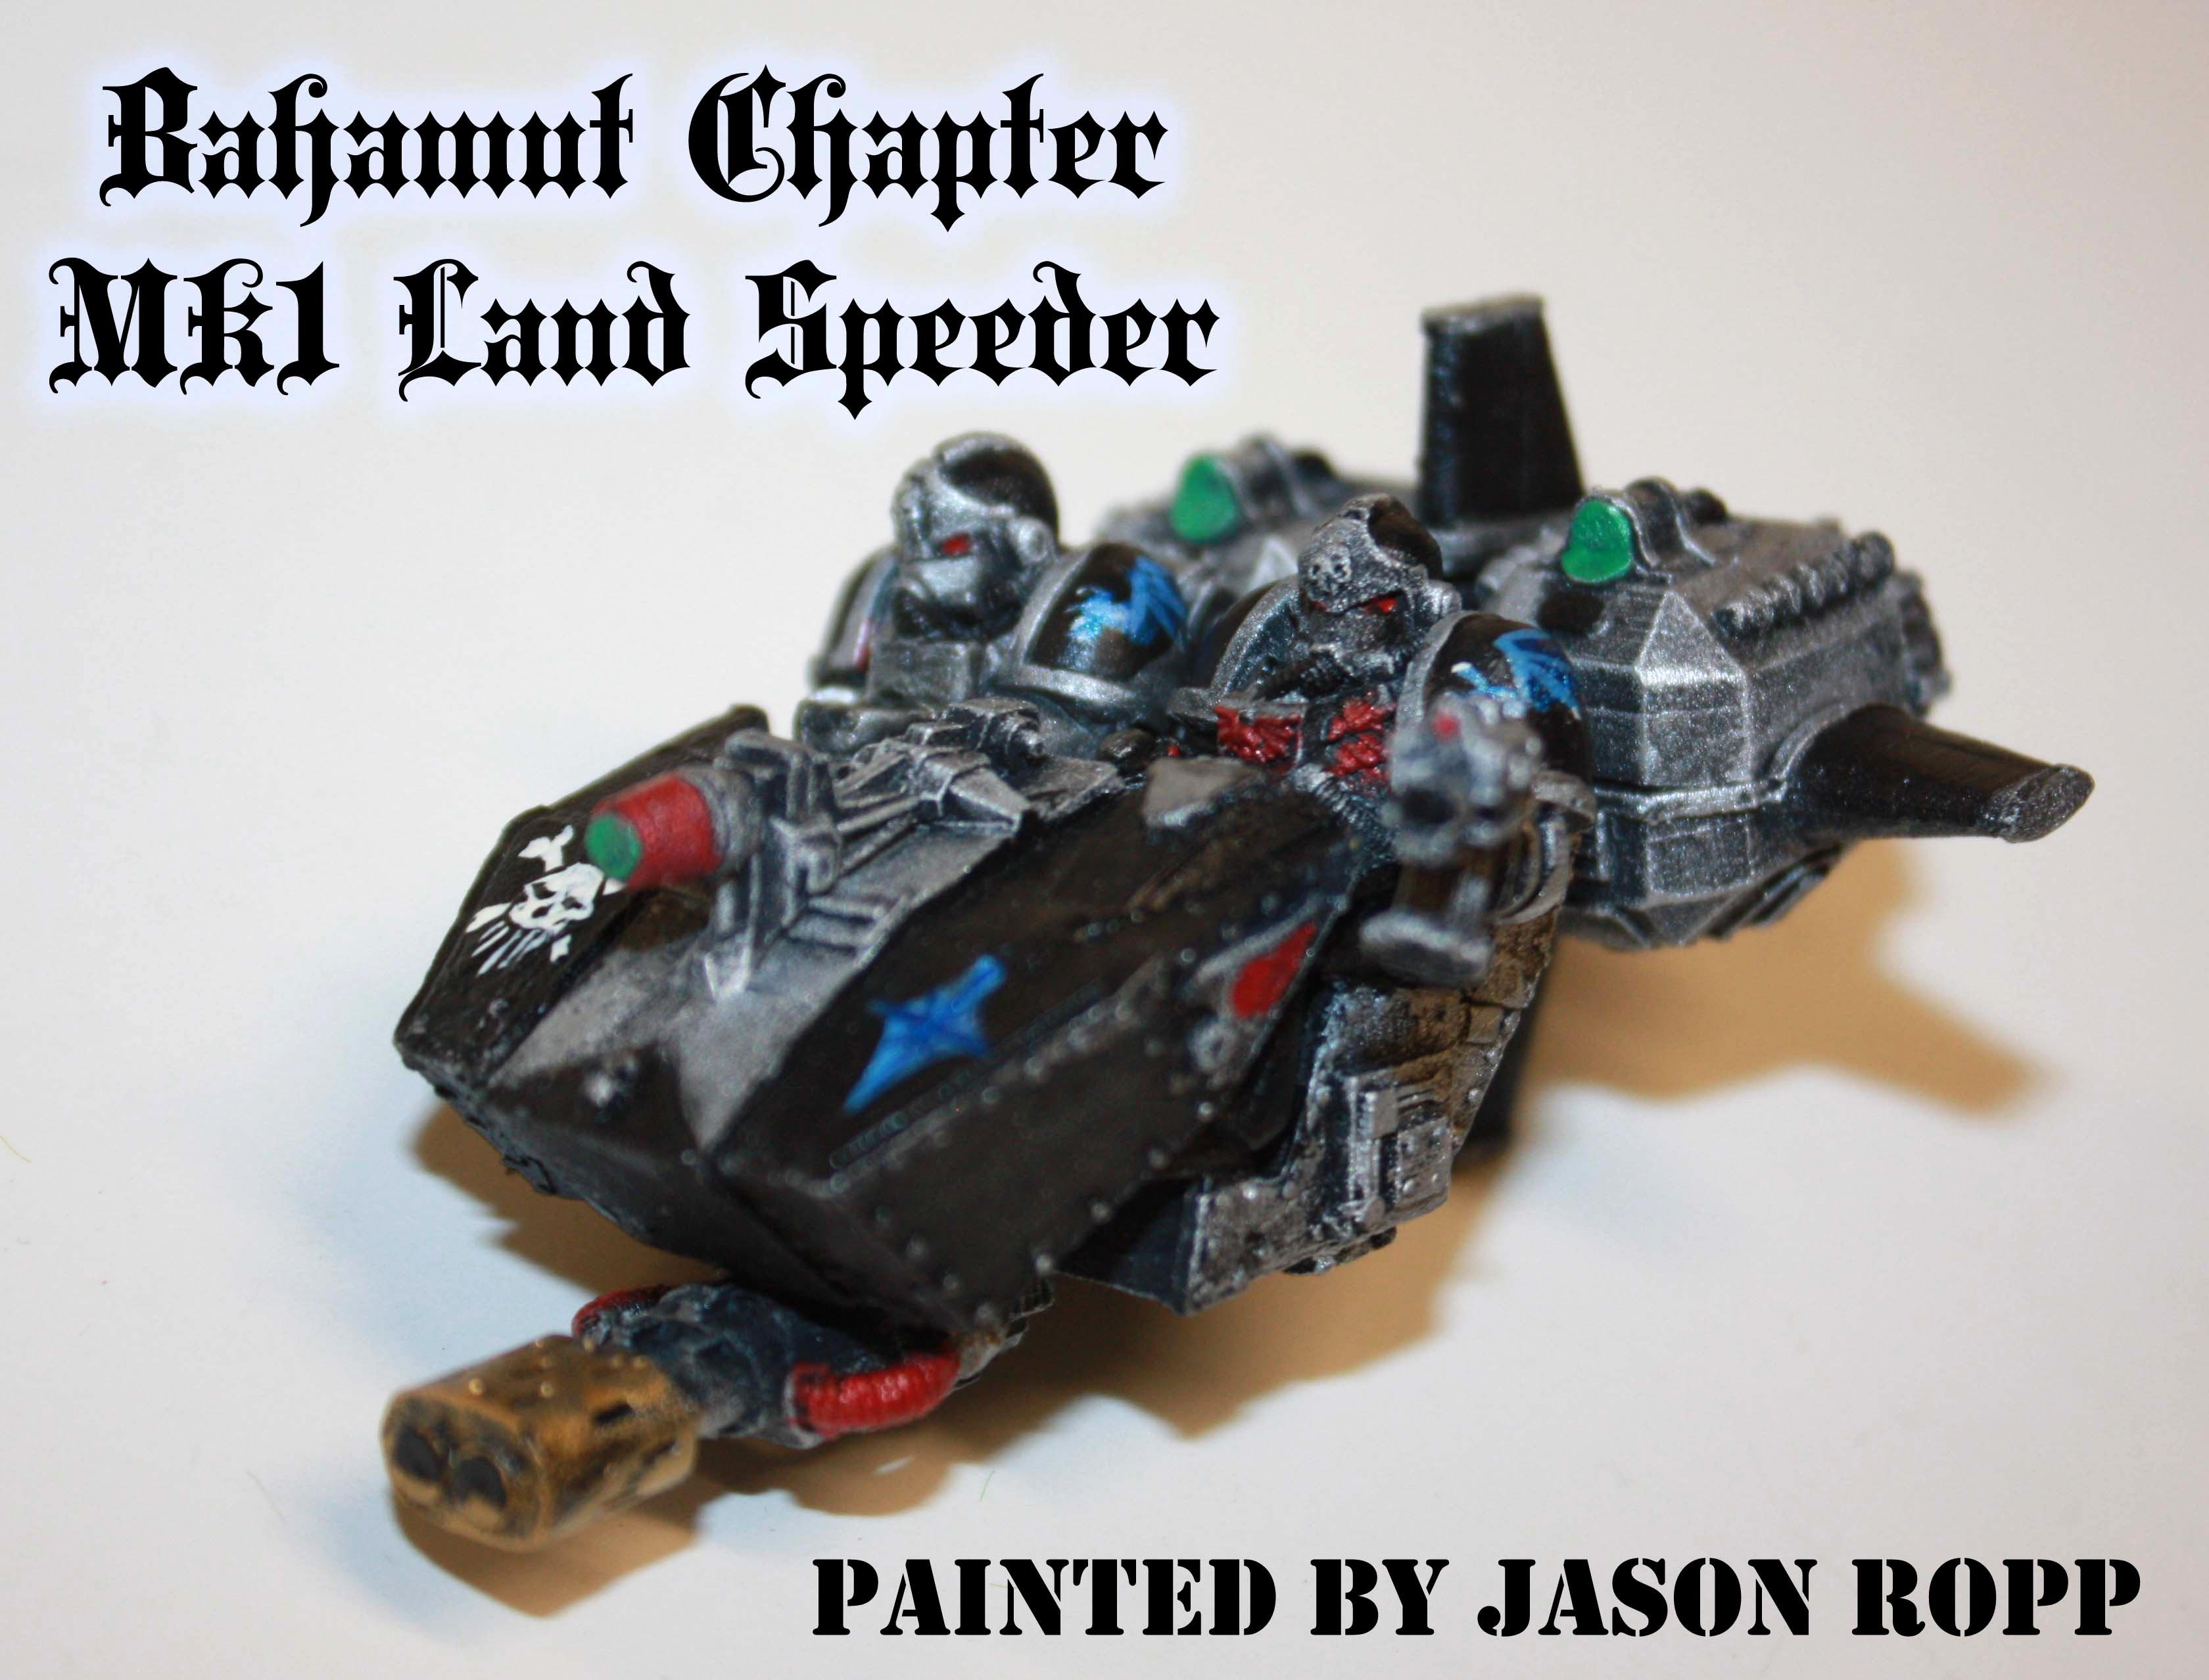 1st Edition, 30k, Assasins, Bahamut Chapter, Black, Dreadnought, Imperial, Land Speeder, Miniatures, Mk1, Painted, Silver, Space Marines, Warhammer 40,000